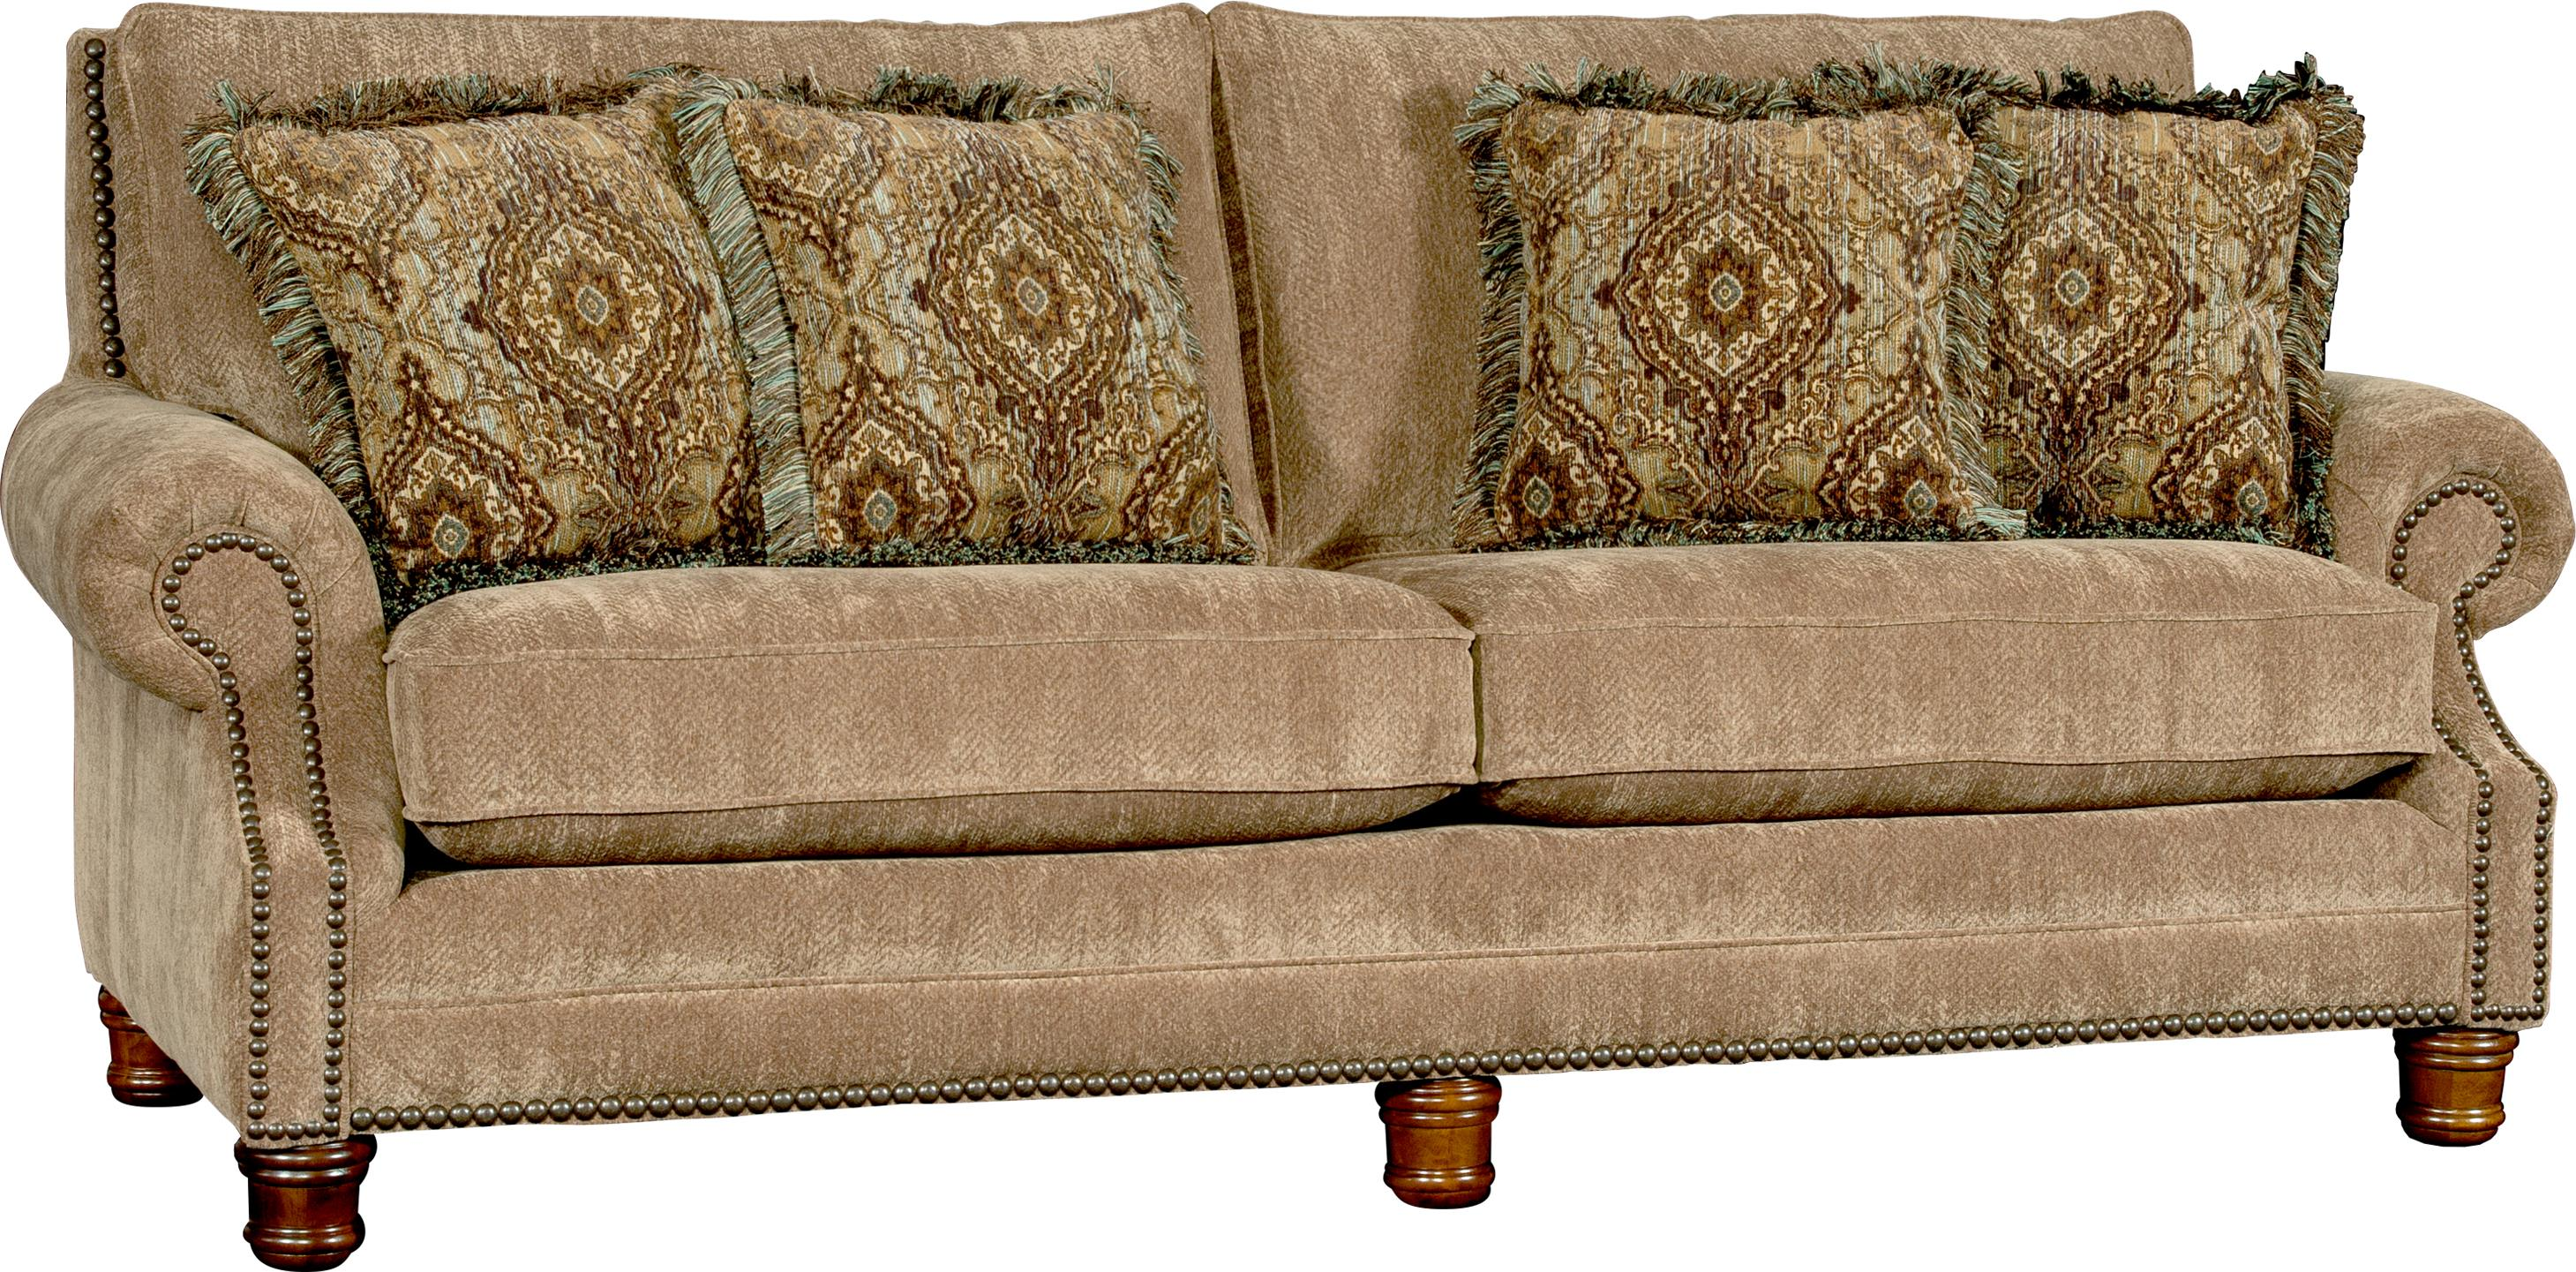 5790 Traditional Sofa by Mayo at Wilcox Furniture